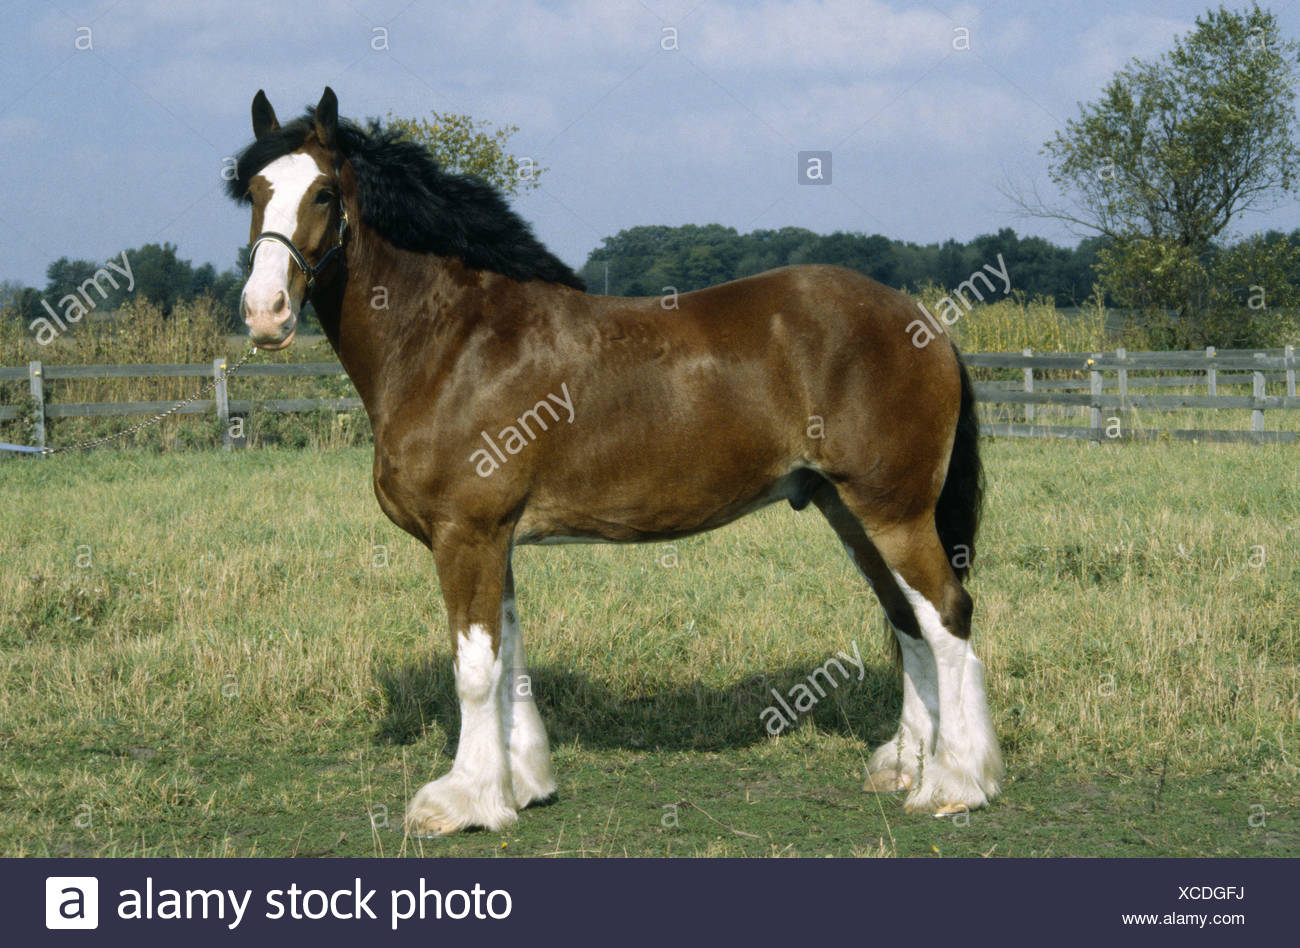 clydesdale jake color bay with white blaze and four white stockings illinois XCDGFJ